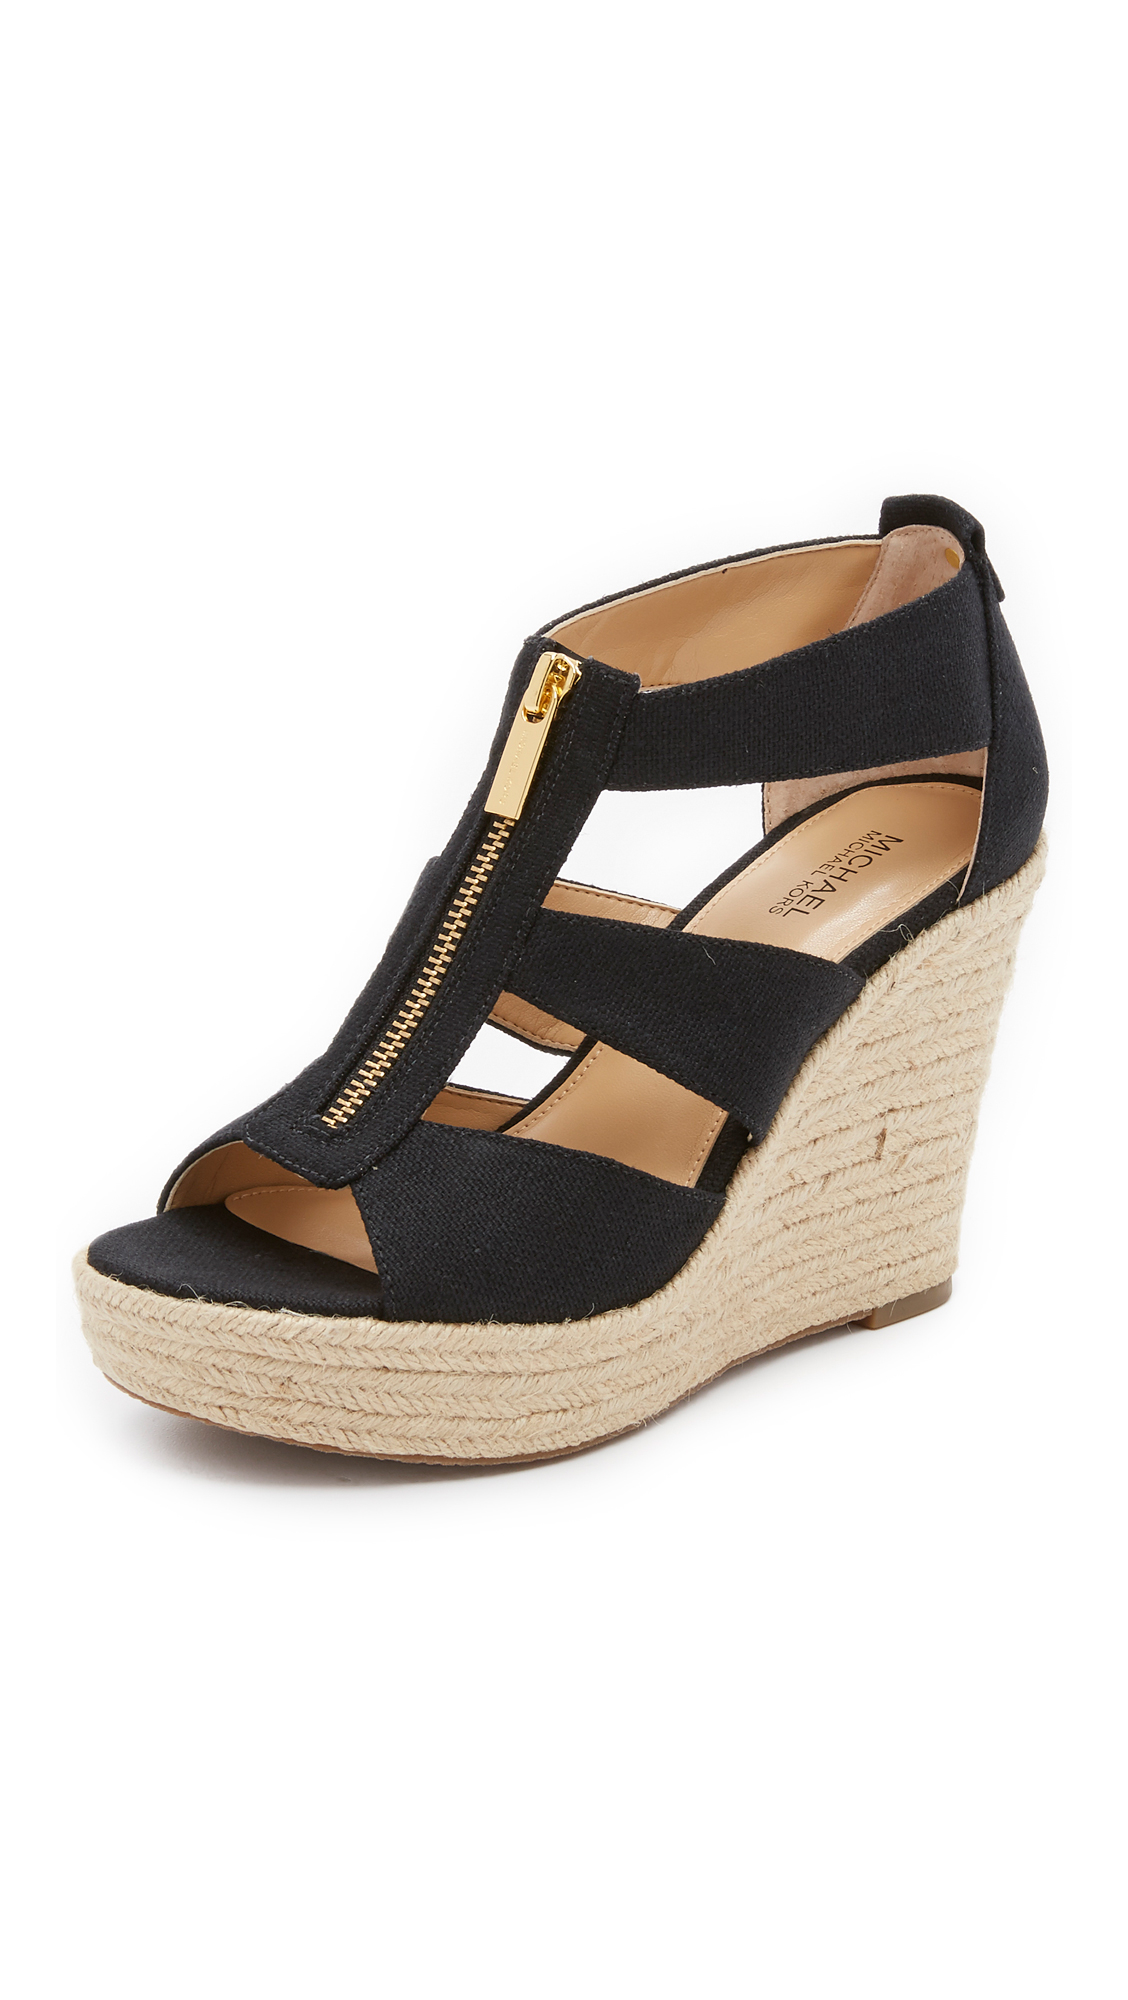 Lyst - Michael Michael Kors Damita Wedge Sandals in Black